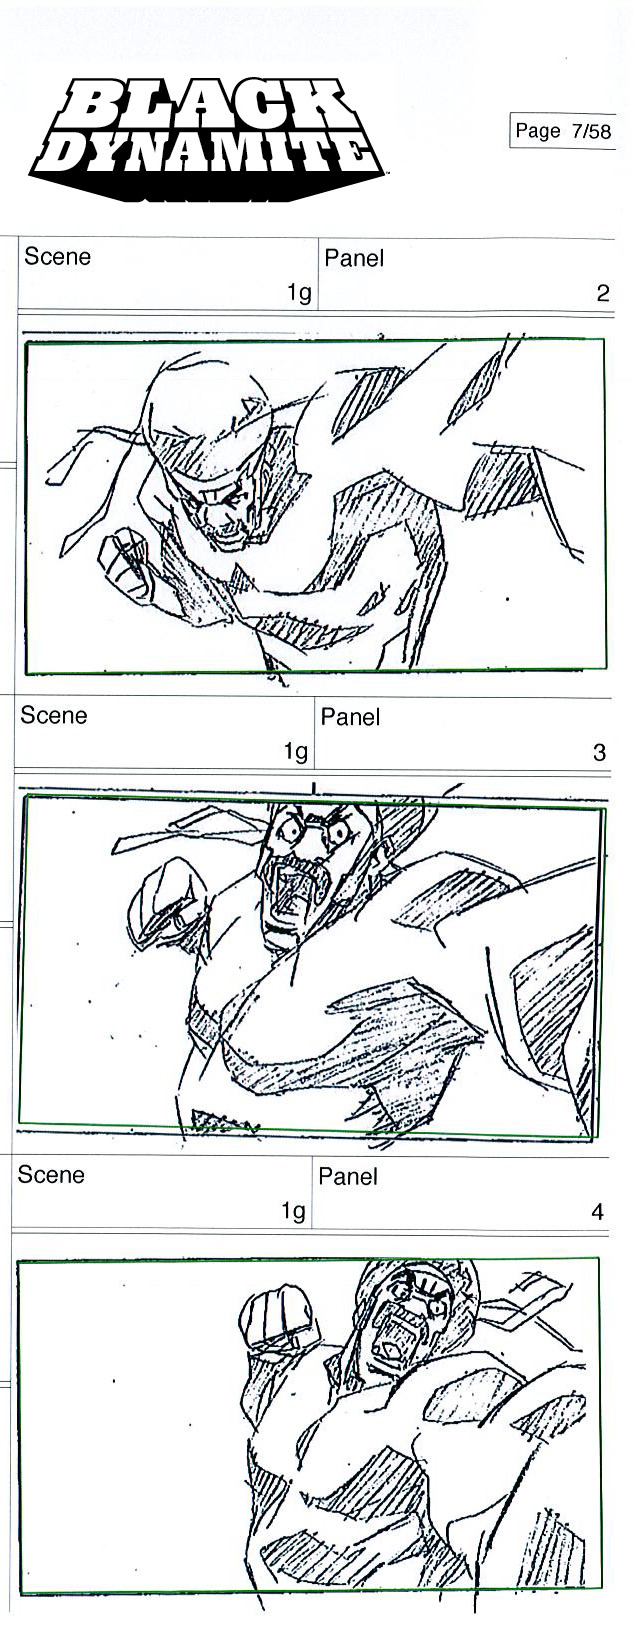 Black Dynamite storyboard sketch of him punching some jive turkey.